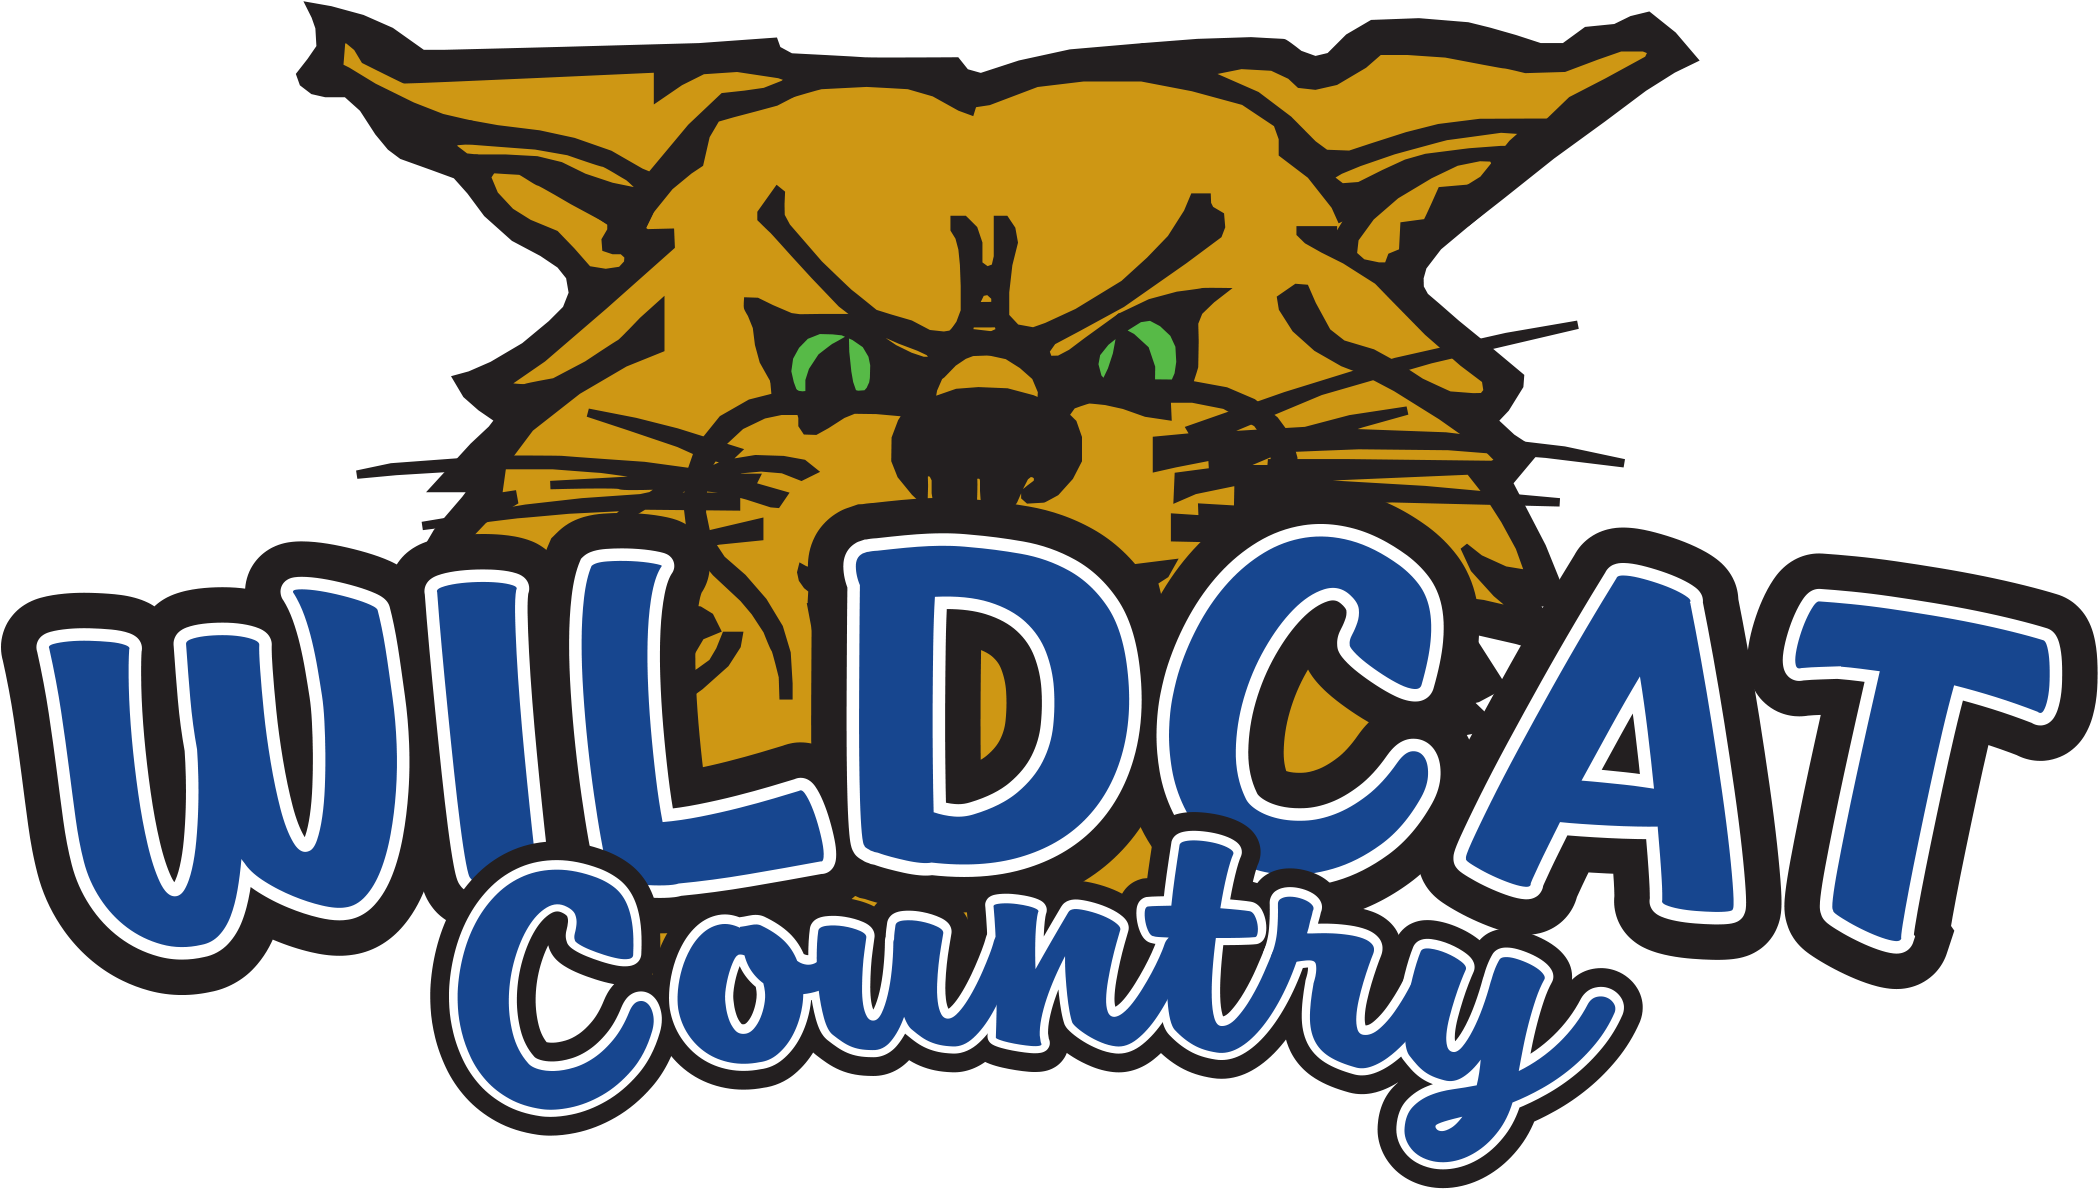 Wildcat Country , Png Download.